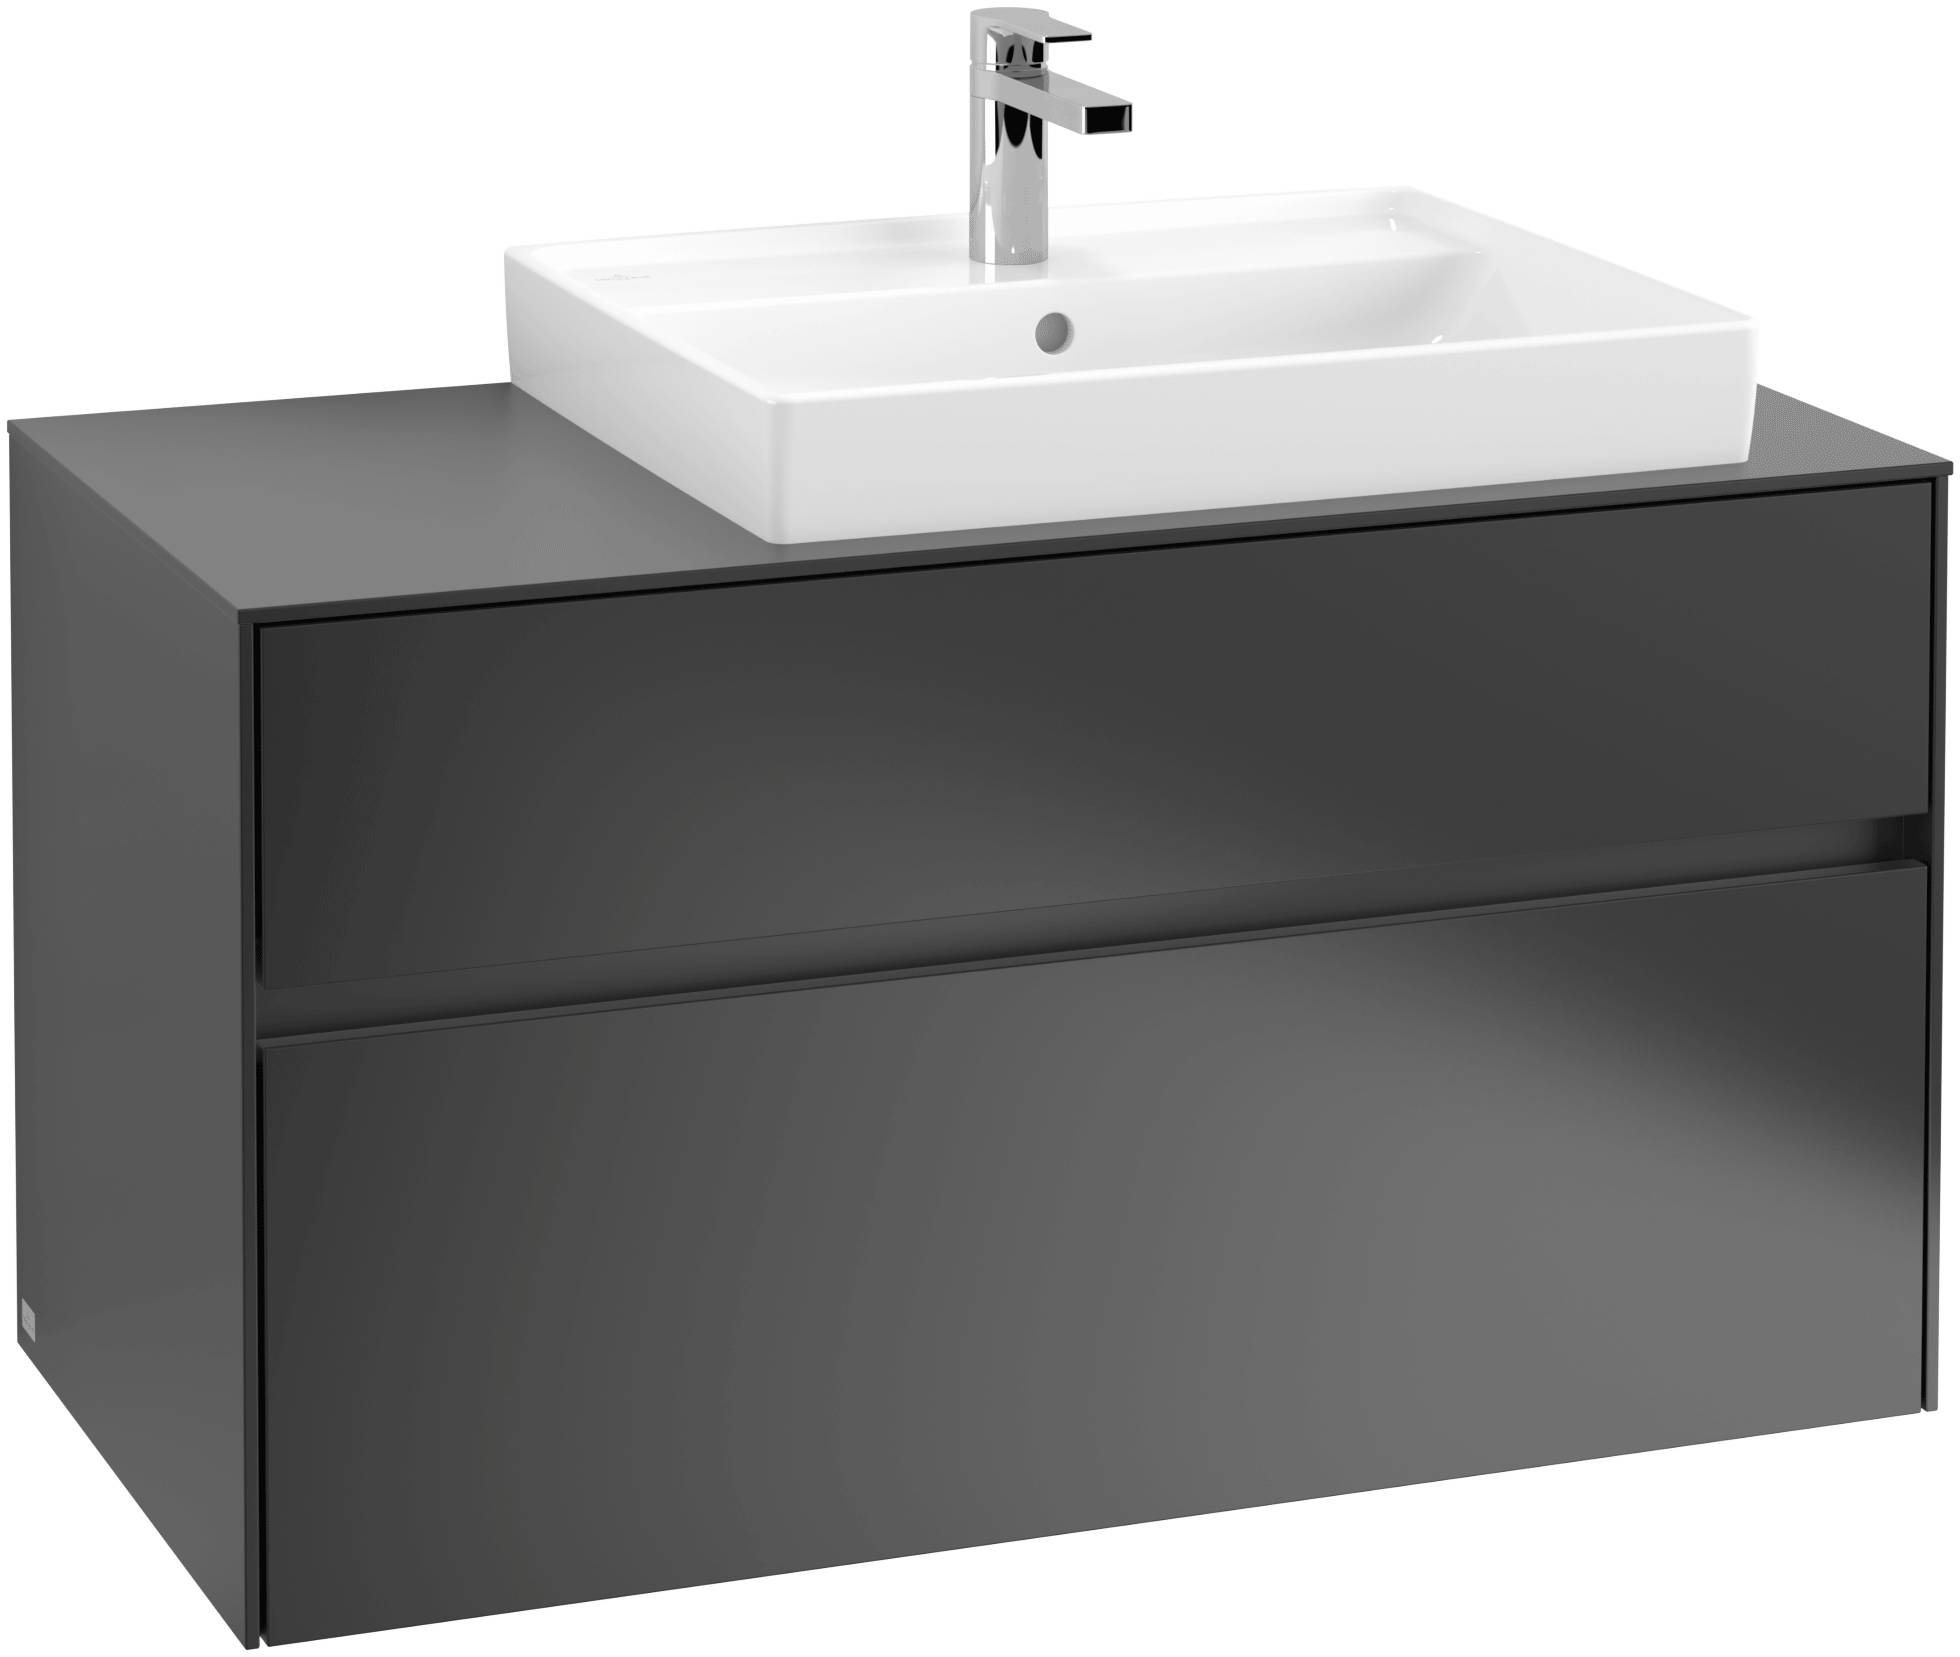 Villeroy & Boch Villeroy & Boch Collaro - Meuble sous lavabo with 2 drawers & 1 cut-out right 1000 x 548 x 500mm noir mat